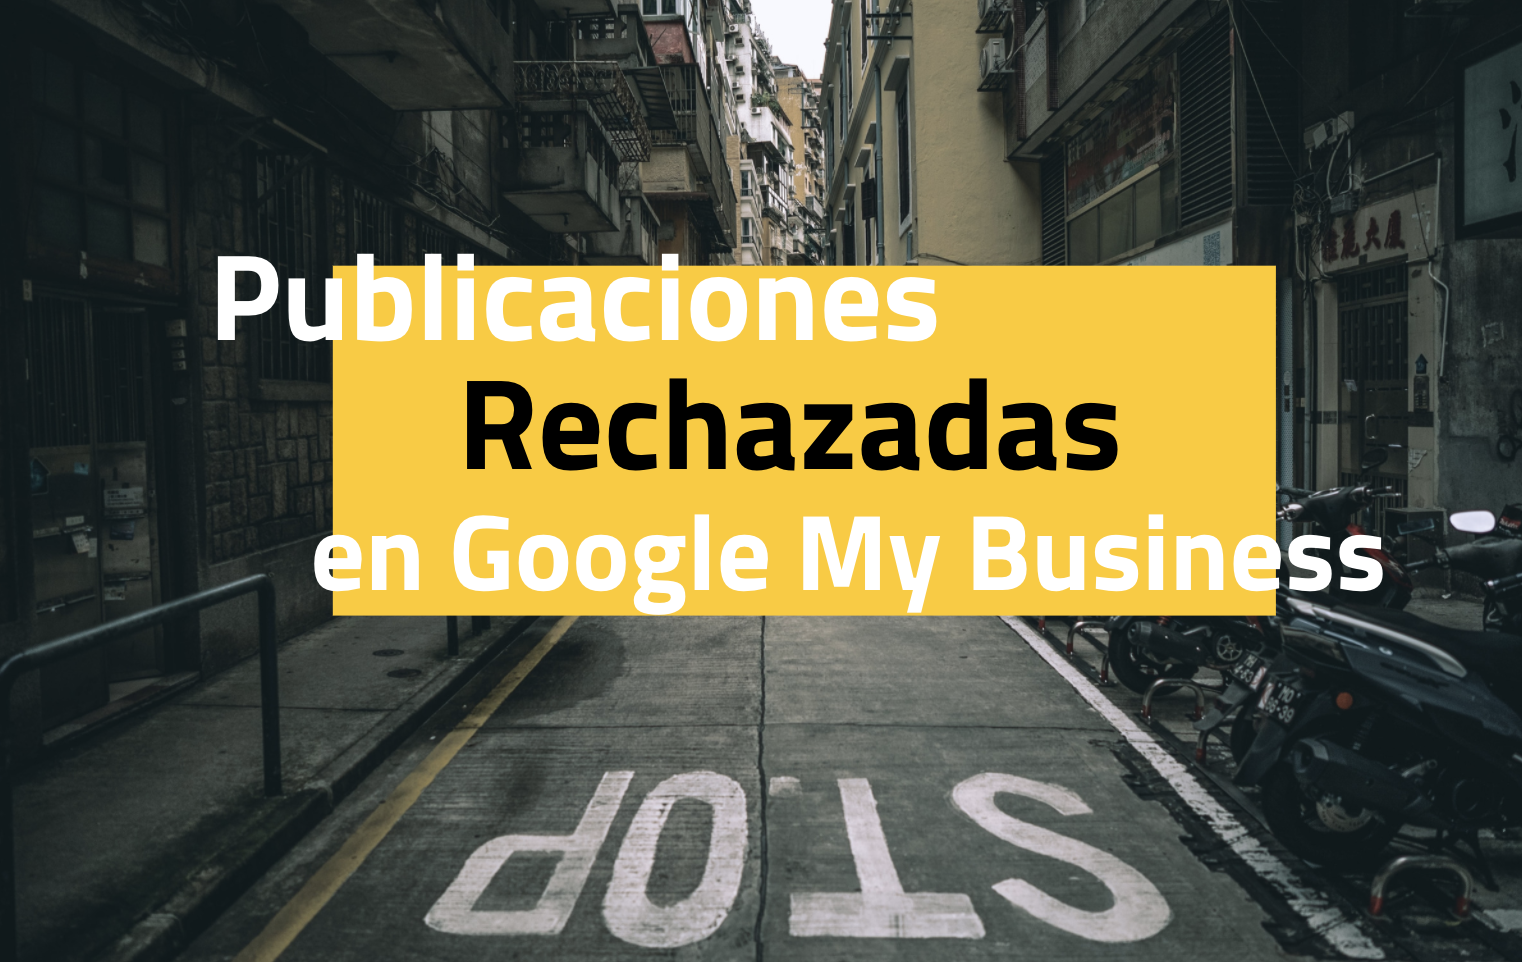 Publicaciones rechazadas en Google My Business